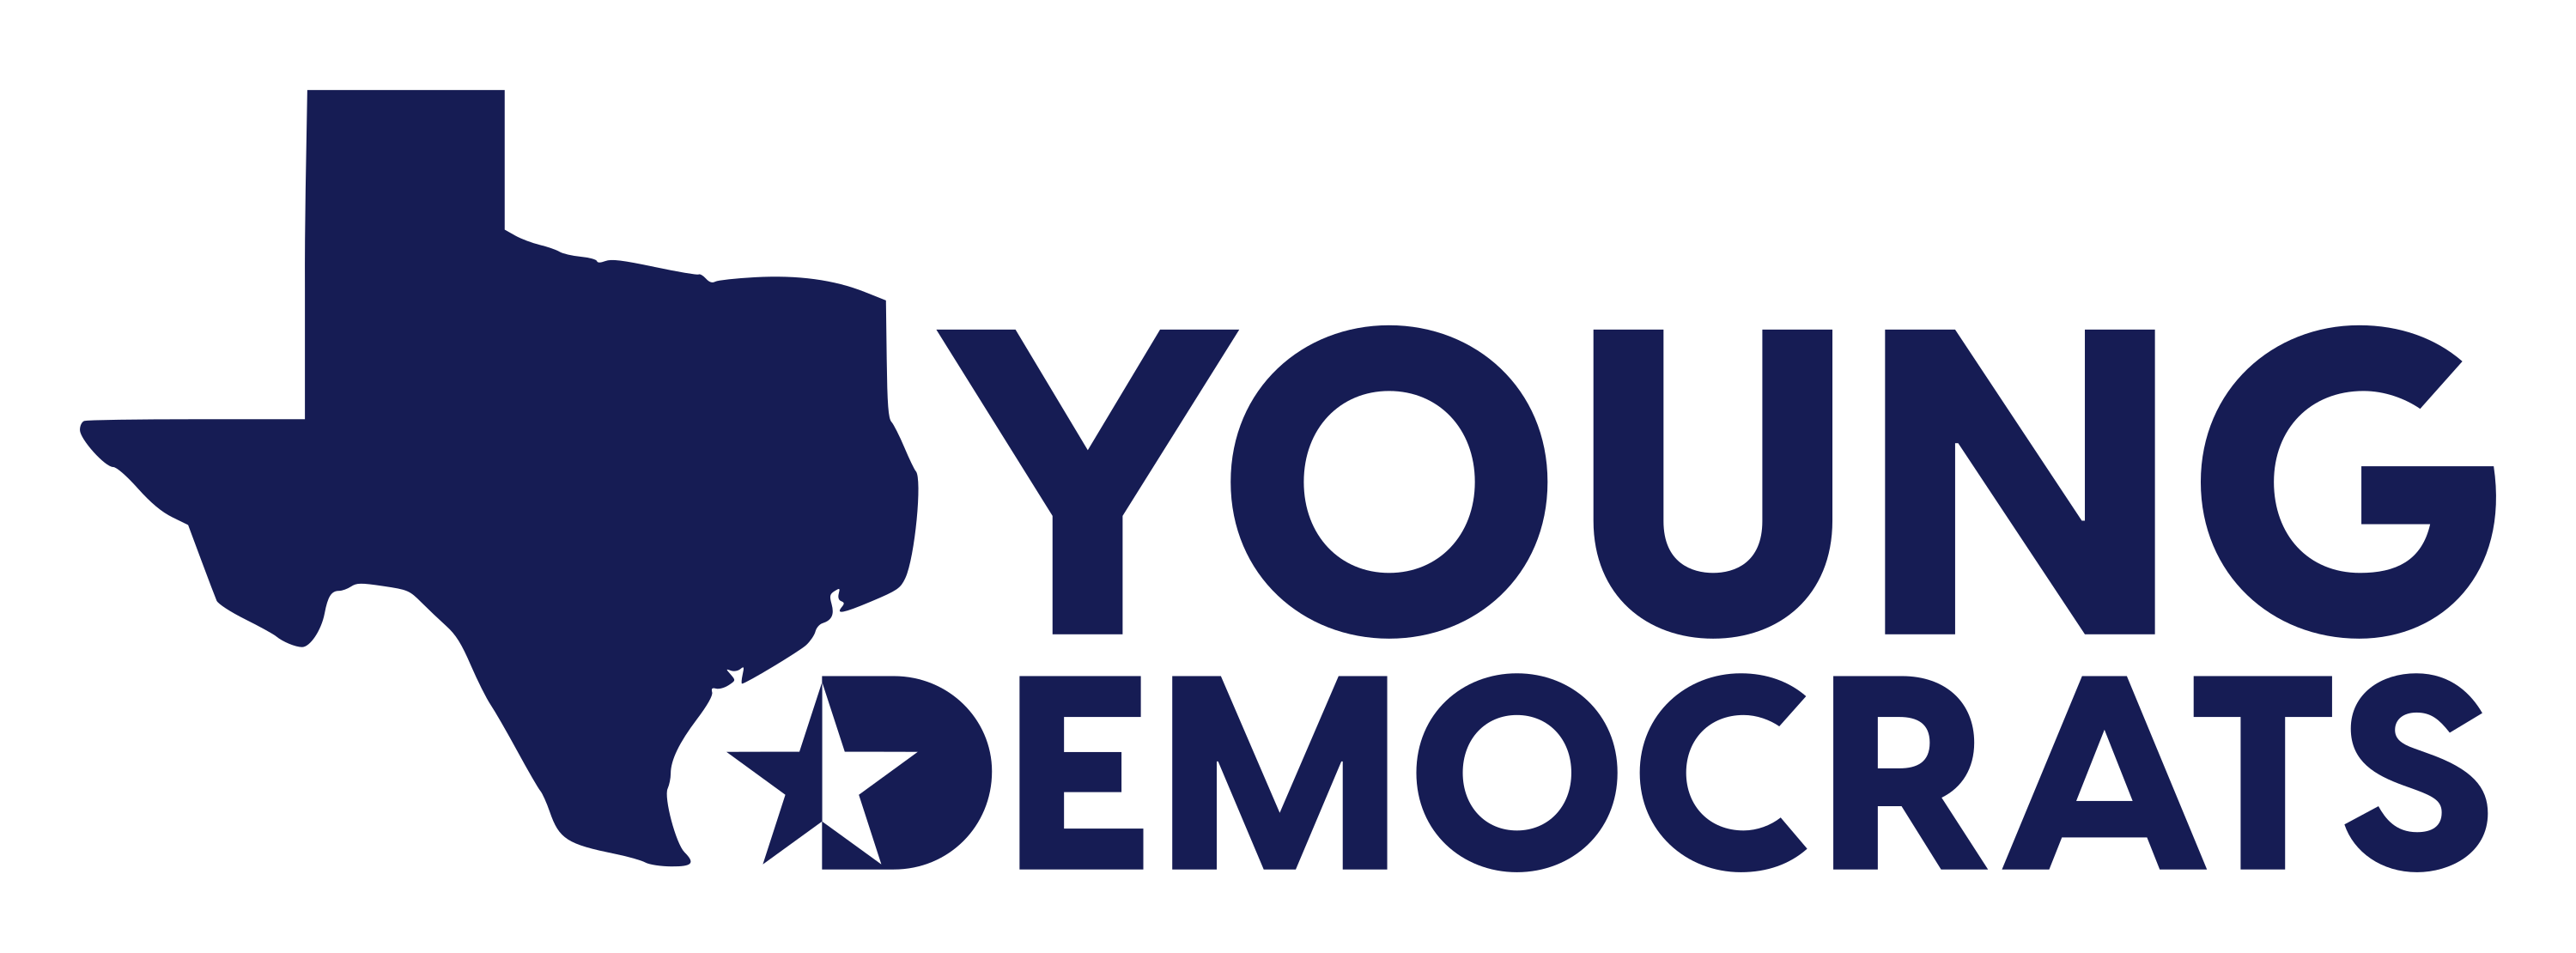 Texas Young Democrats